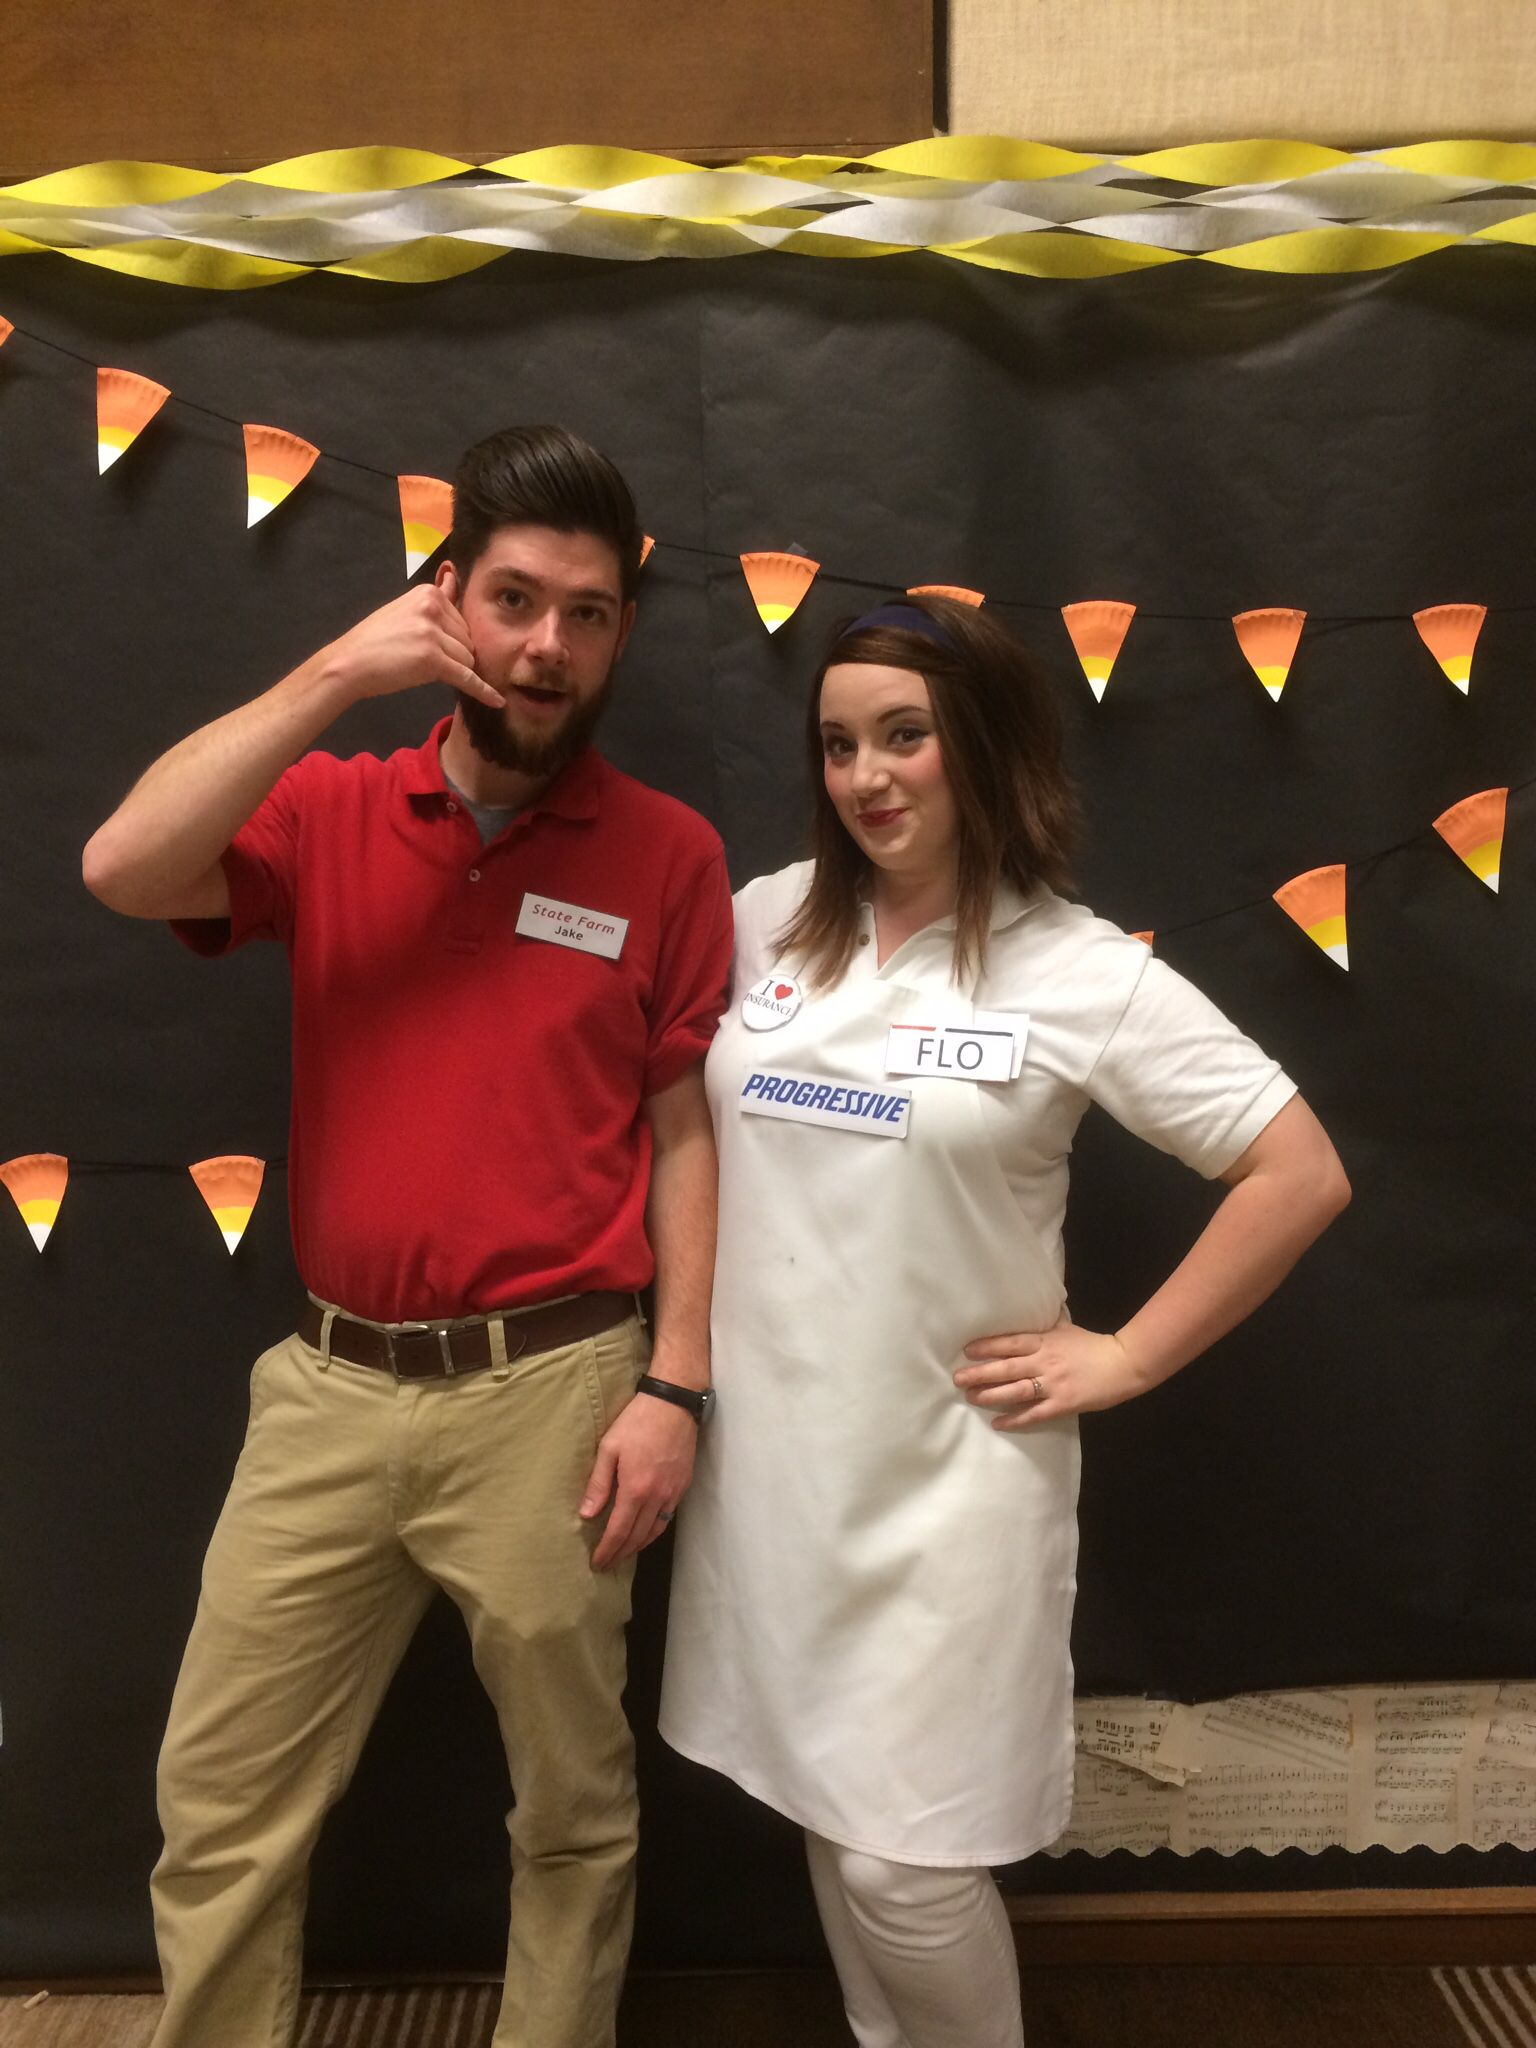 diy couples costume: flo from progressive and jake from state farm